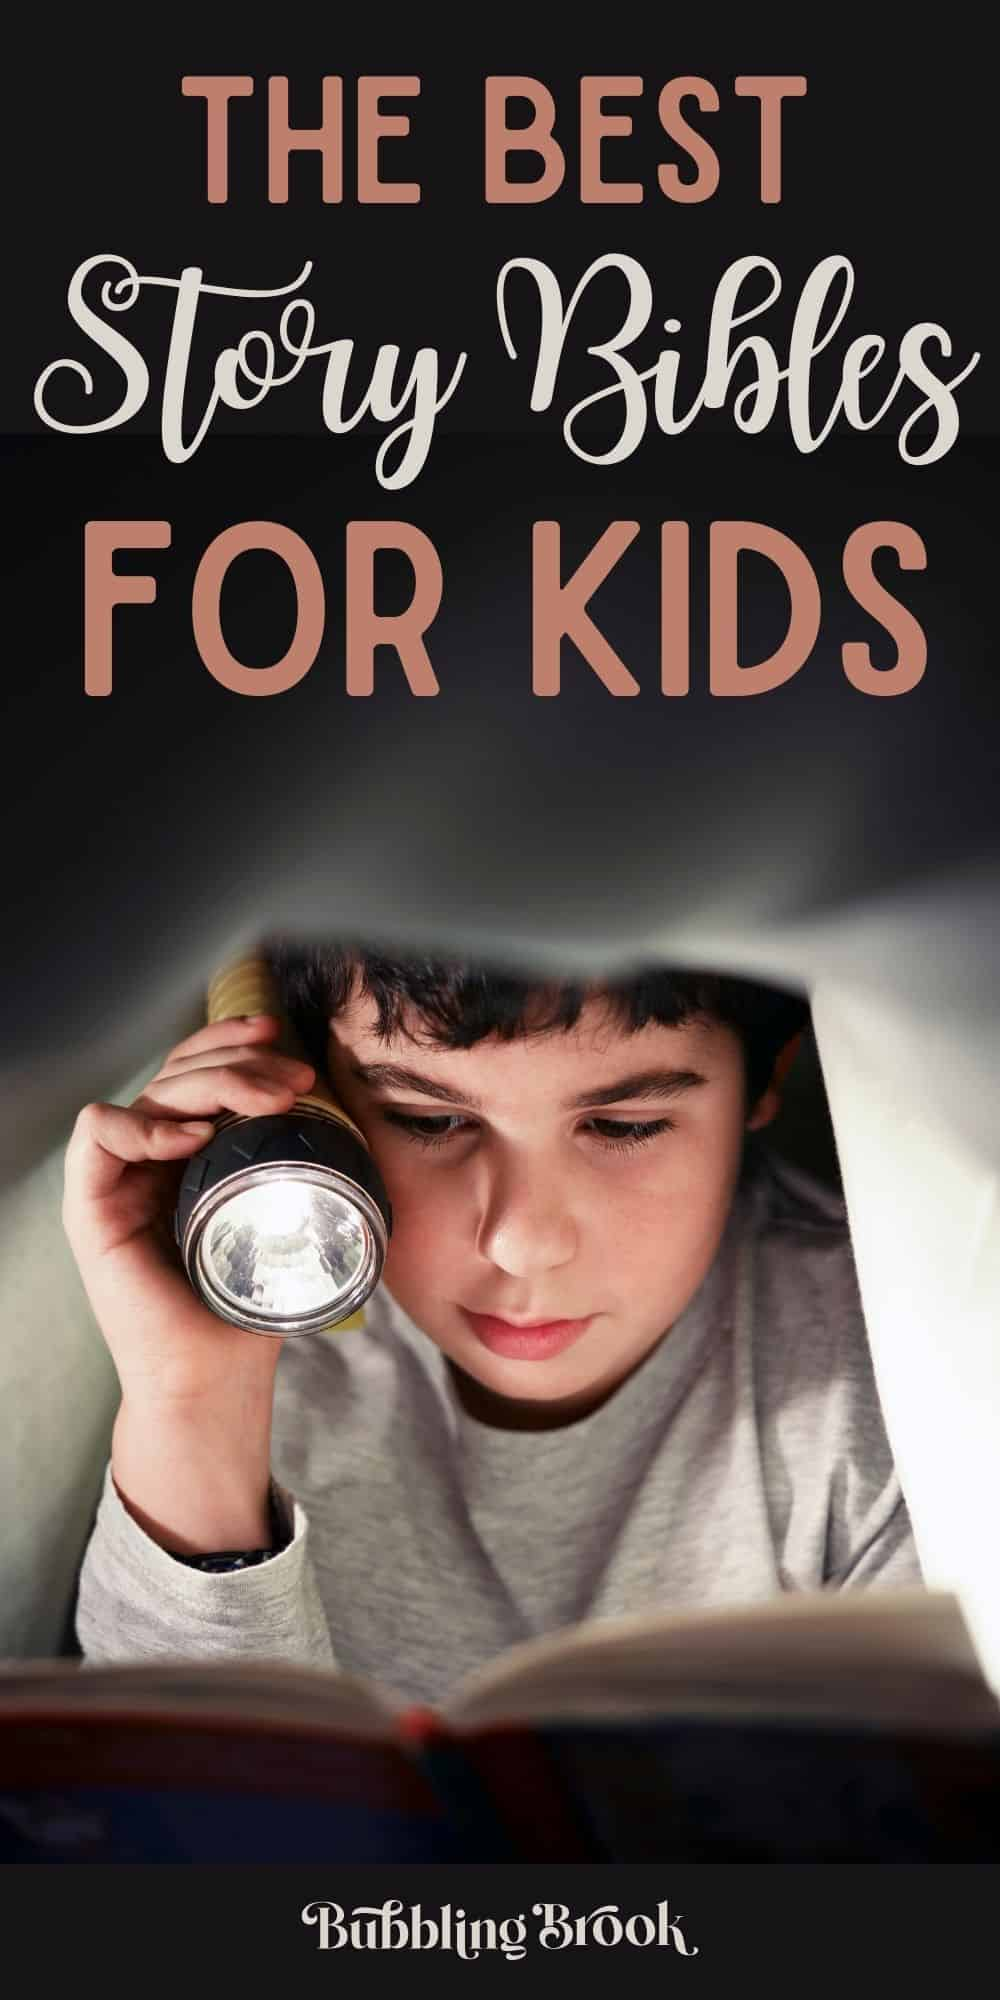 Boys reading best kids bibles under covers with flashlight